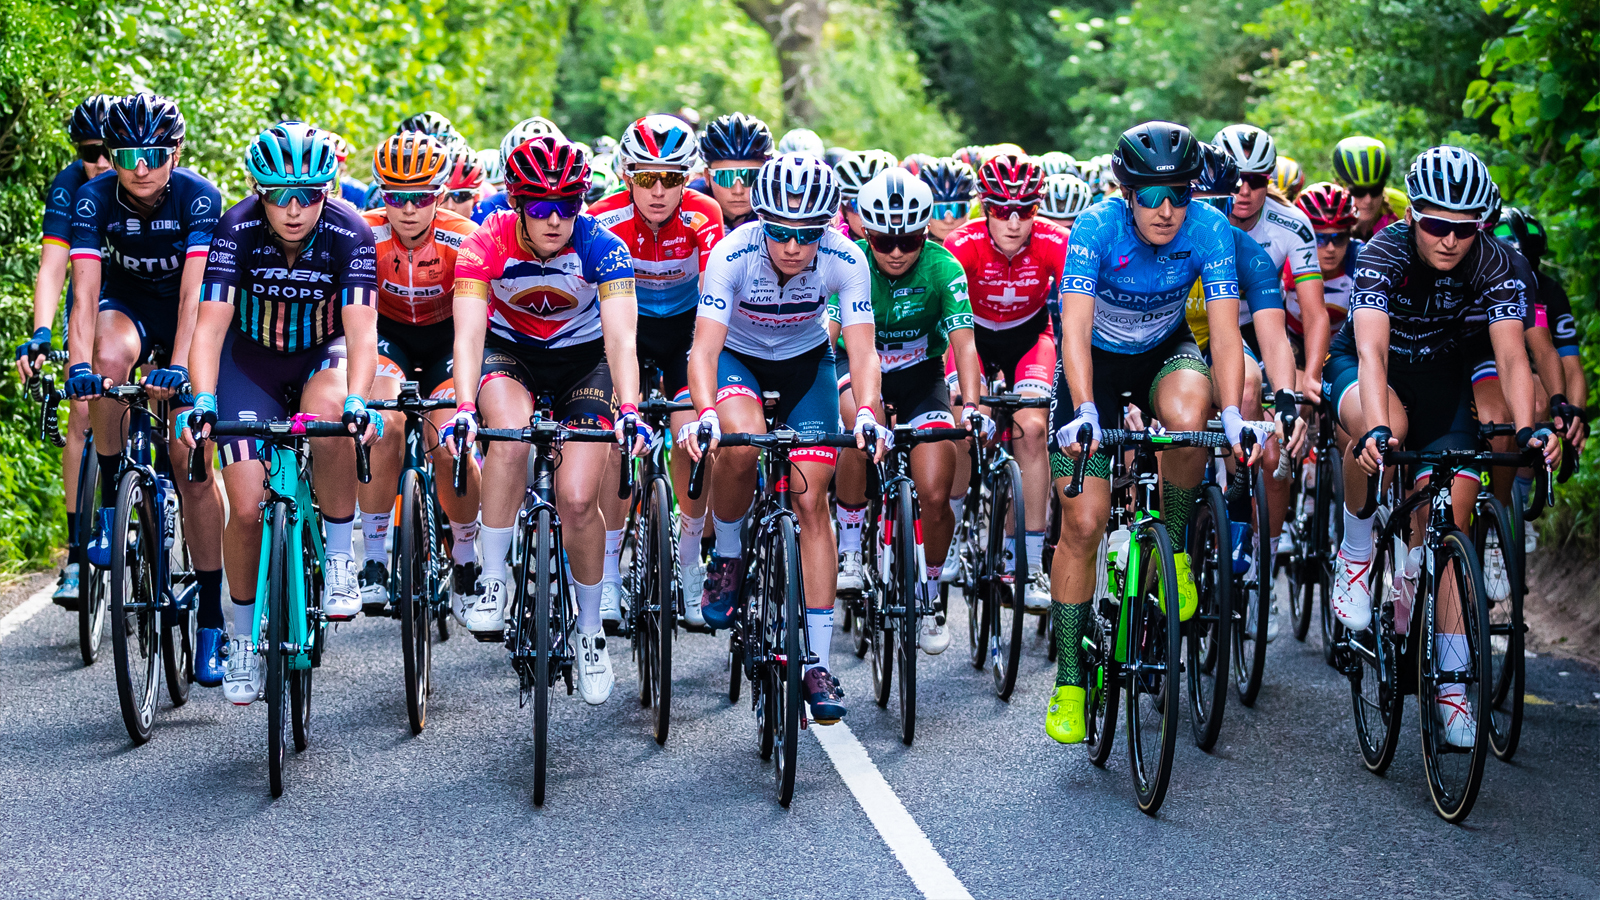 Women's Tour teams